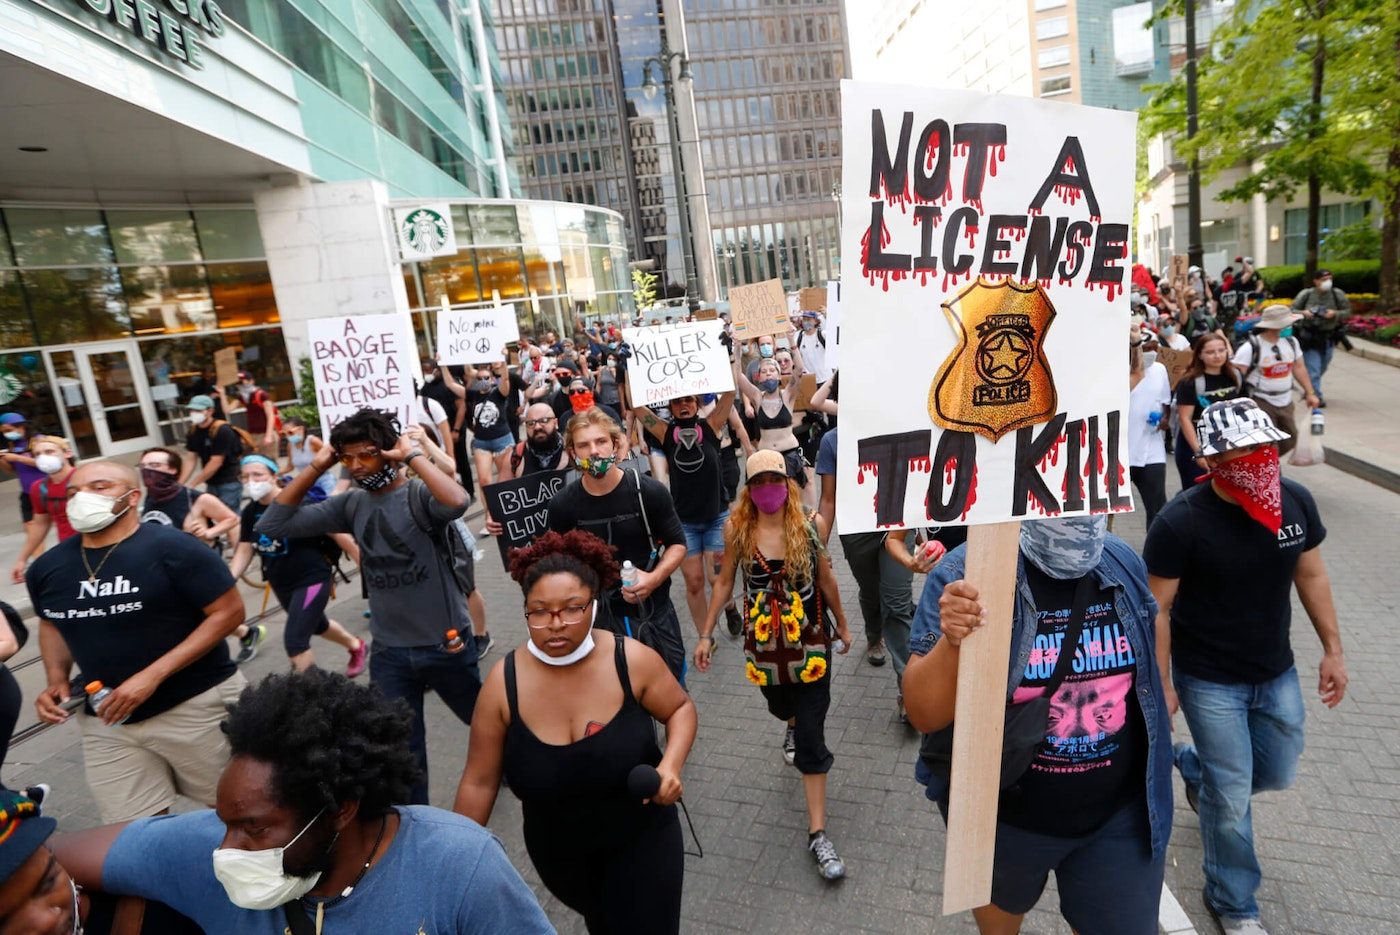 Protesters march during a rally in Detroit, Wednesday, June 3, 2020 over the death of George Floyd, a black man who died in police custody in Minneapolis on Memorial Day. (AP Photo/Paul Sancya)